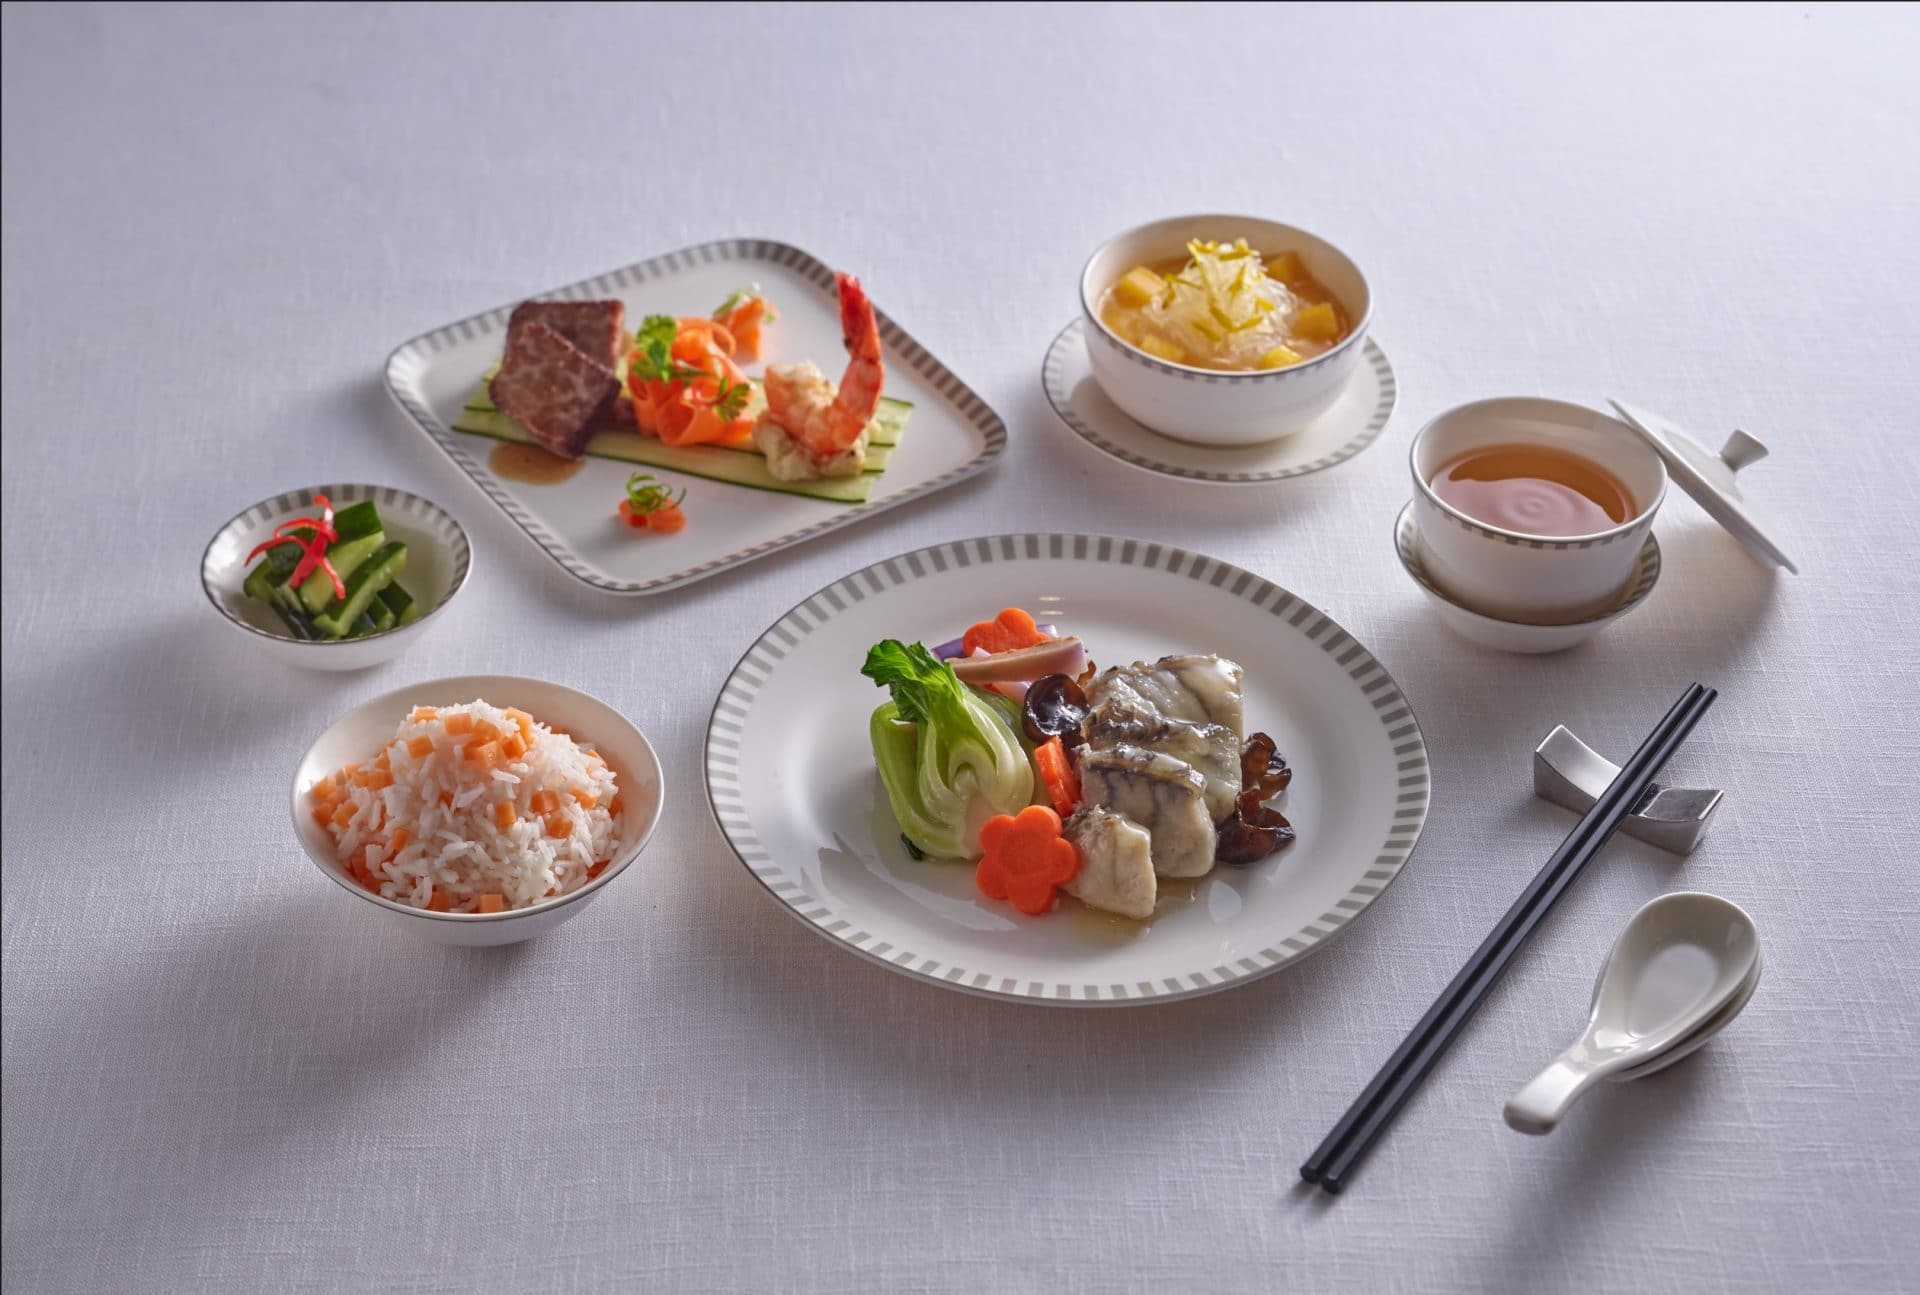 Created By Zhu Jun1, A World Renowned Chef On The Airlines